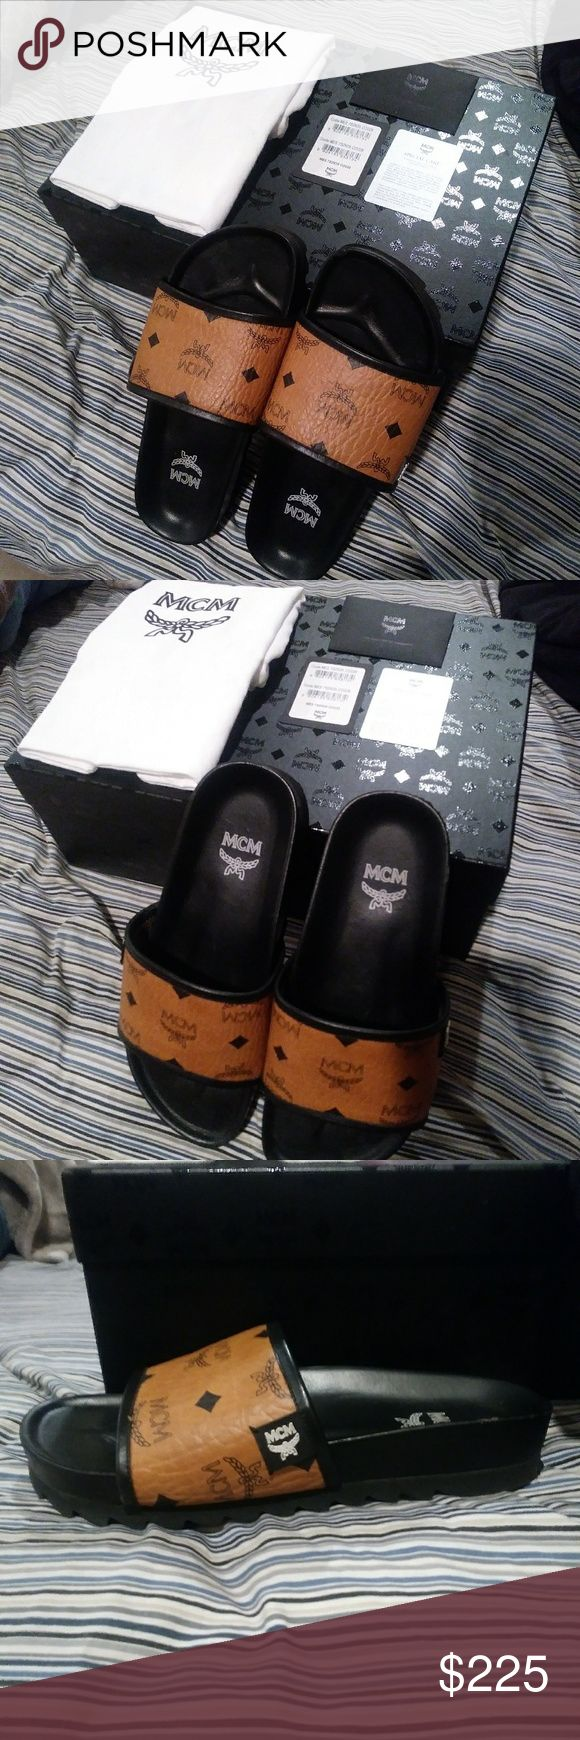 *Authentic MCM Slides* Authentic MCM Viestos Slides Size 38. I ordered them from the actual MCM website. Although I love them sadly they are too small. Small flaw on the tip of right shoe but barely noticeable when worn. Comes with OG box, care cards, wrapping and ribbons. Please refer to all pics and let me know if you have additional questions ☺ MCM Shoes Slippers